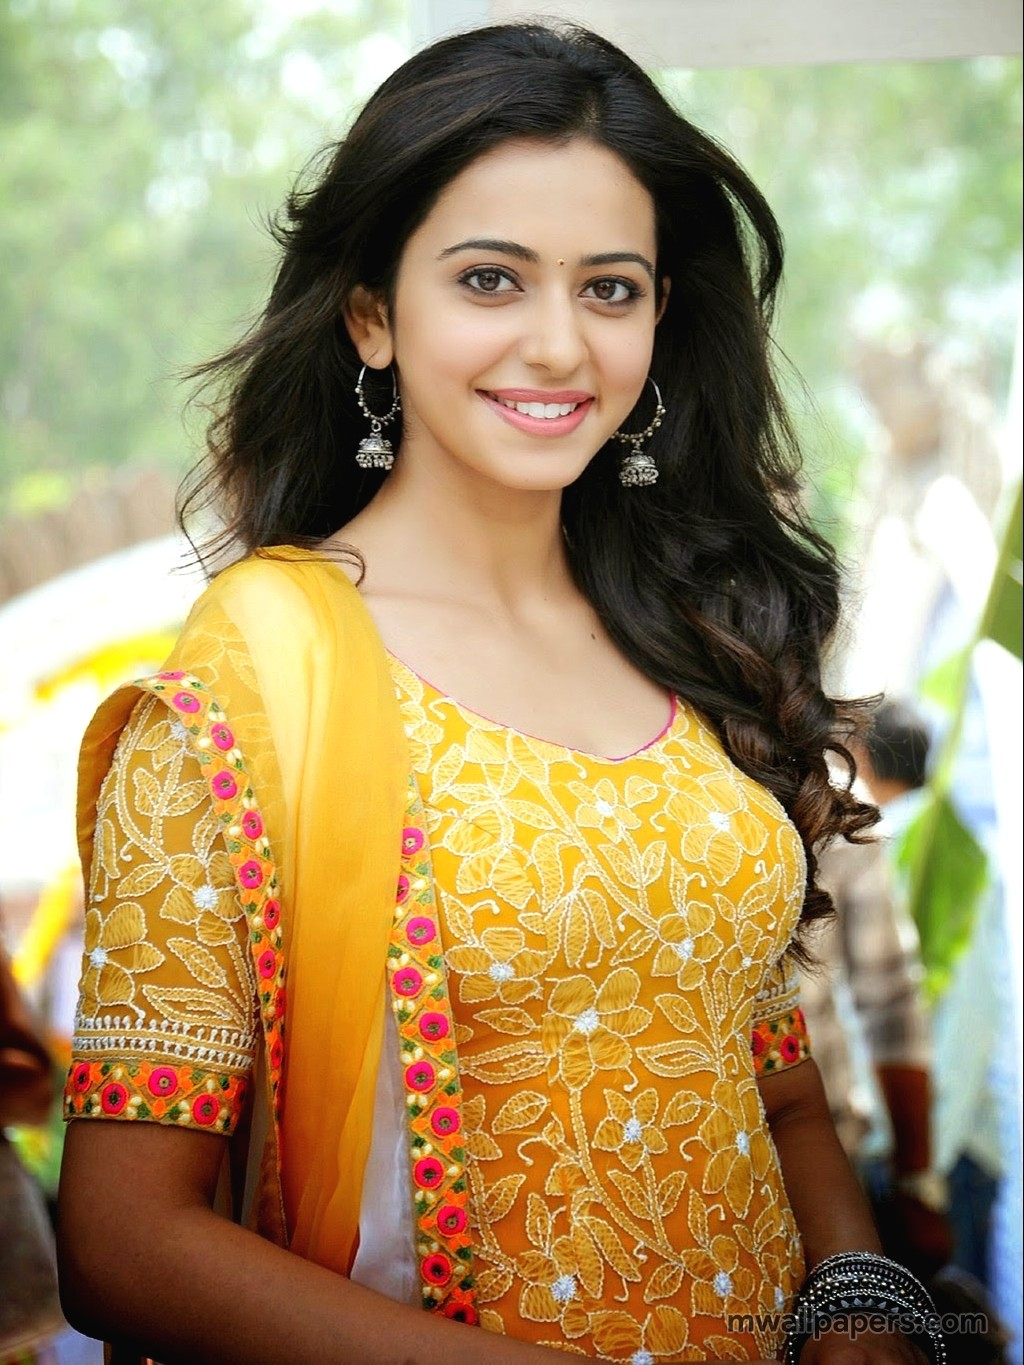 🌟 rakul preet singh hd photo wallpapers [android/iphone/ipad hd